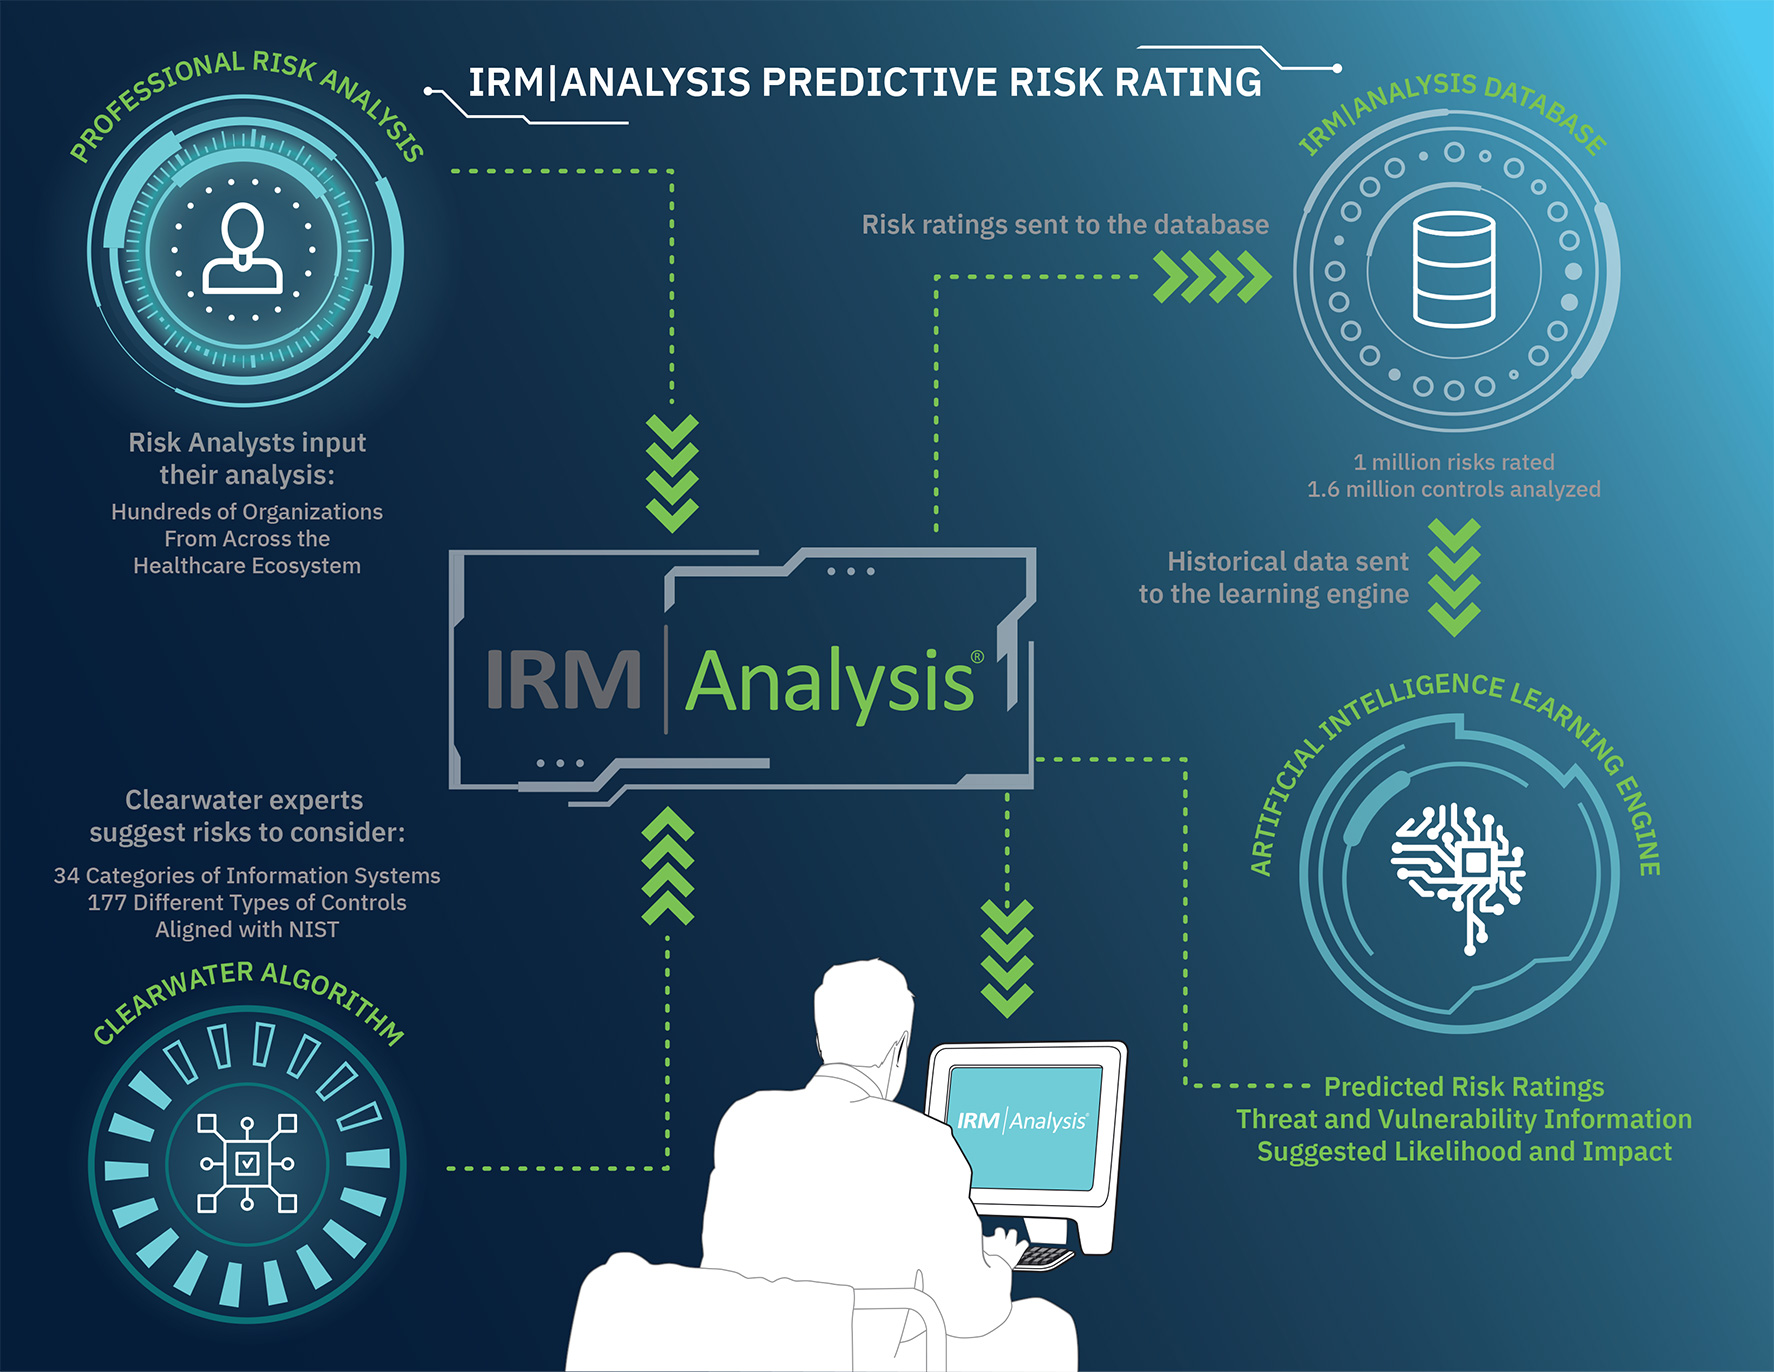 IRM|Analysis - Predictive Risk Rating